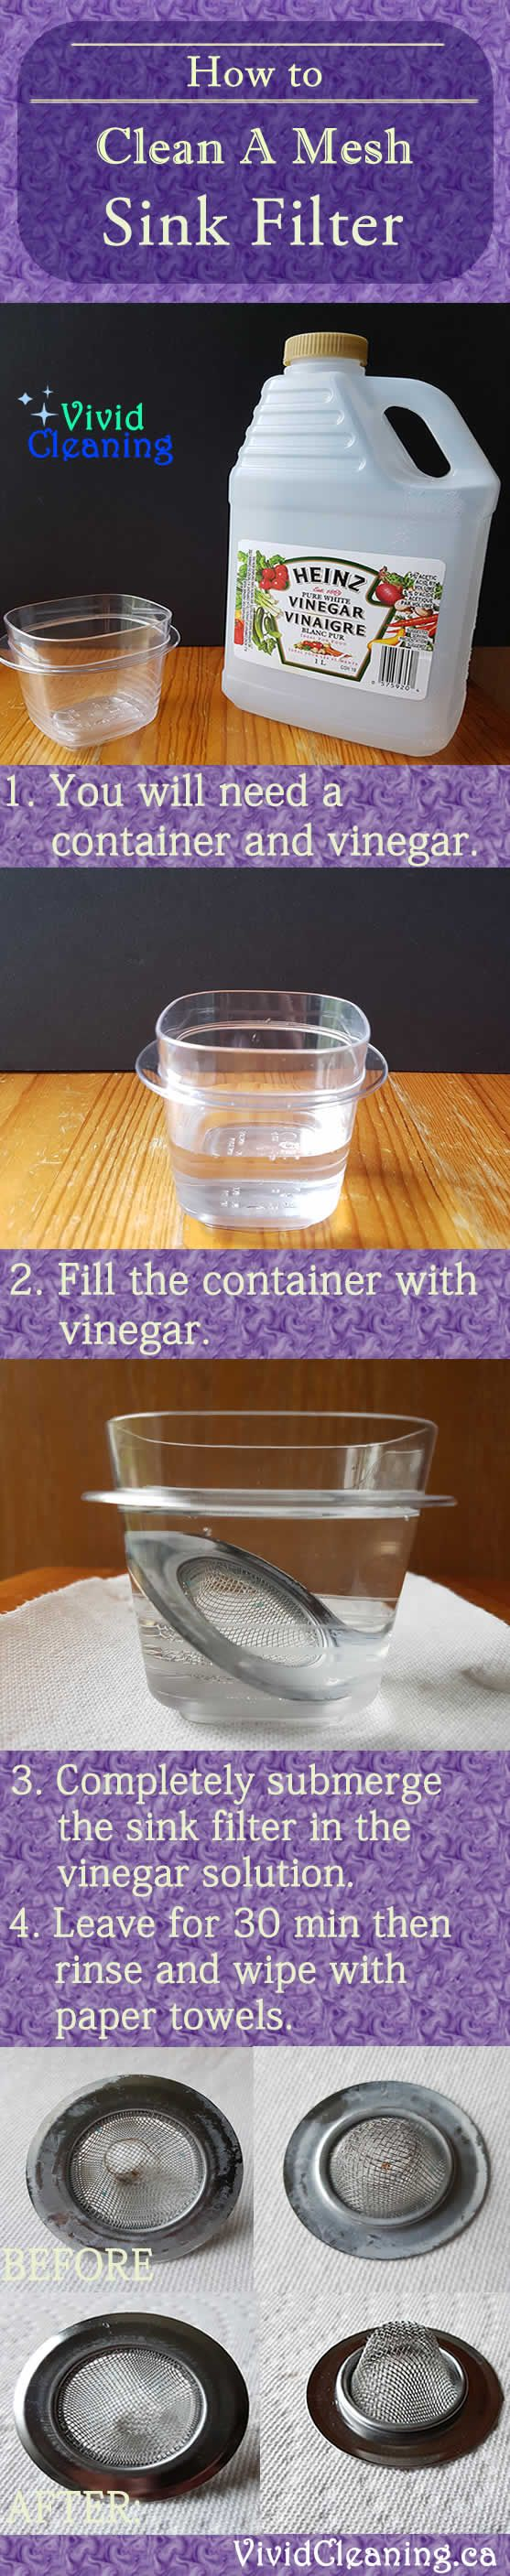 How to Clean and A Mesh Sink Filter 1. You will need a container and vinegar. 2. Fill the container with vinegar. 3. Completely submerge the sink filter in the vinegar solution. 4. Leave for 30 min then rinse and wipe with paper towels.